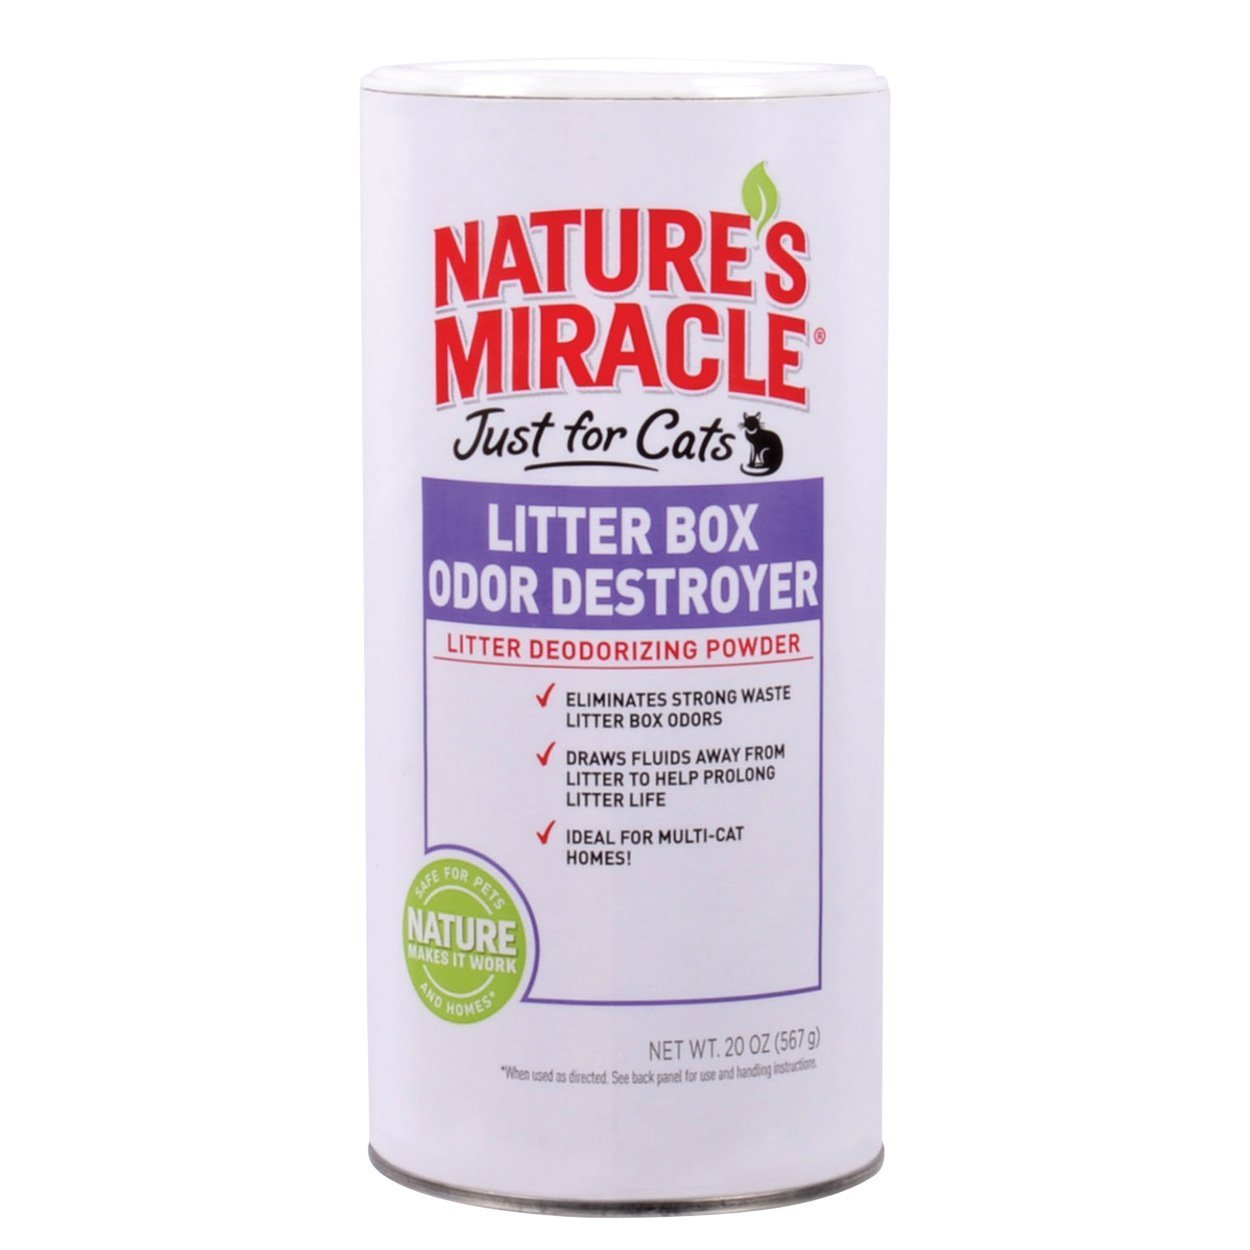 Nature's Miracle Just for Cats Litter Box Odor Destroyer Powder 20 oz Pack of 4